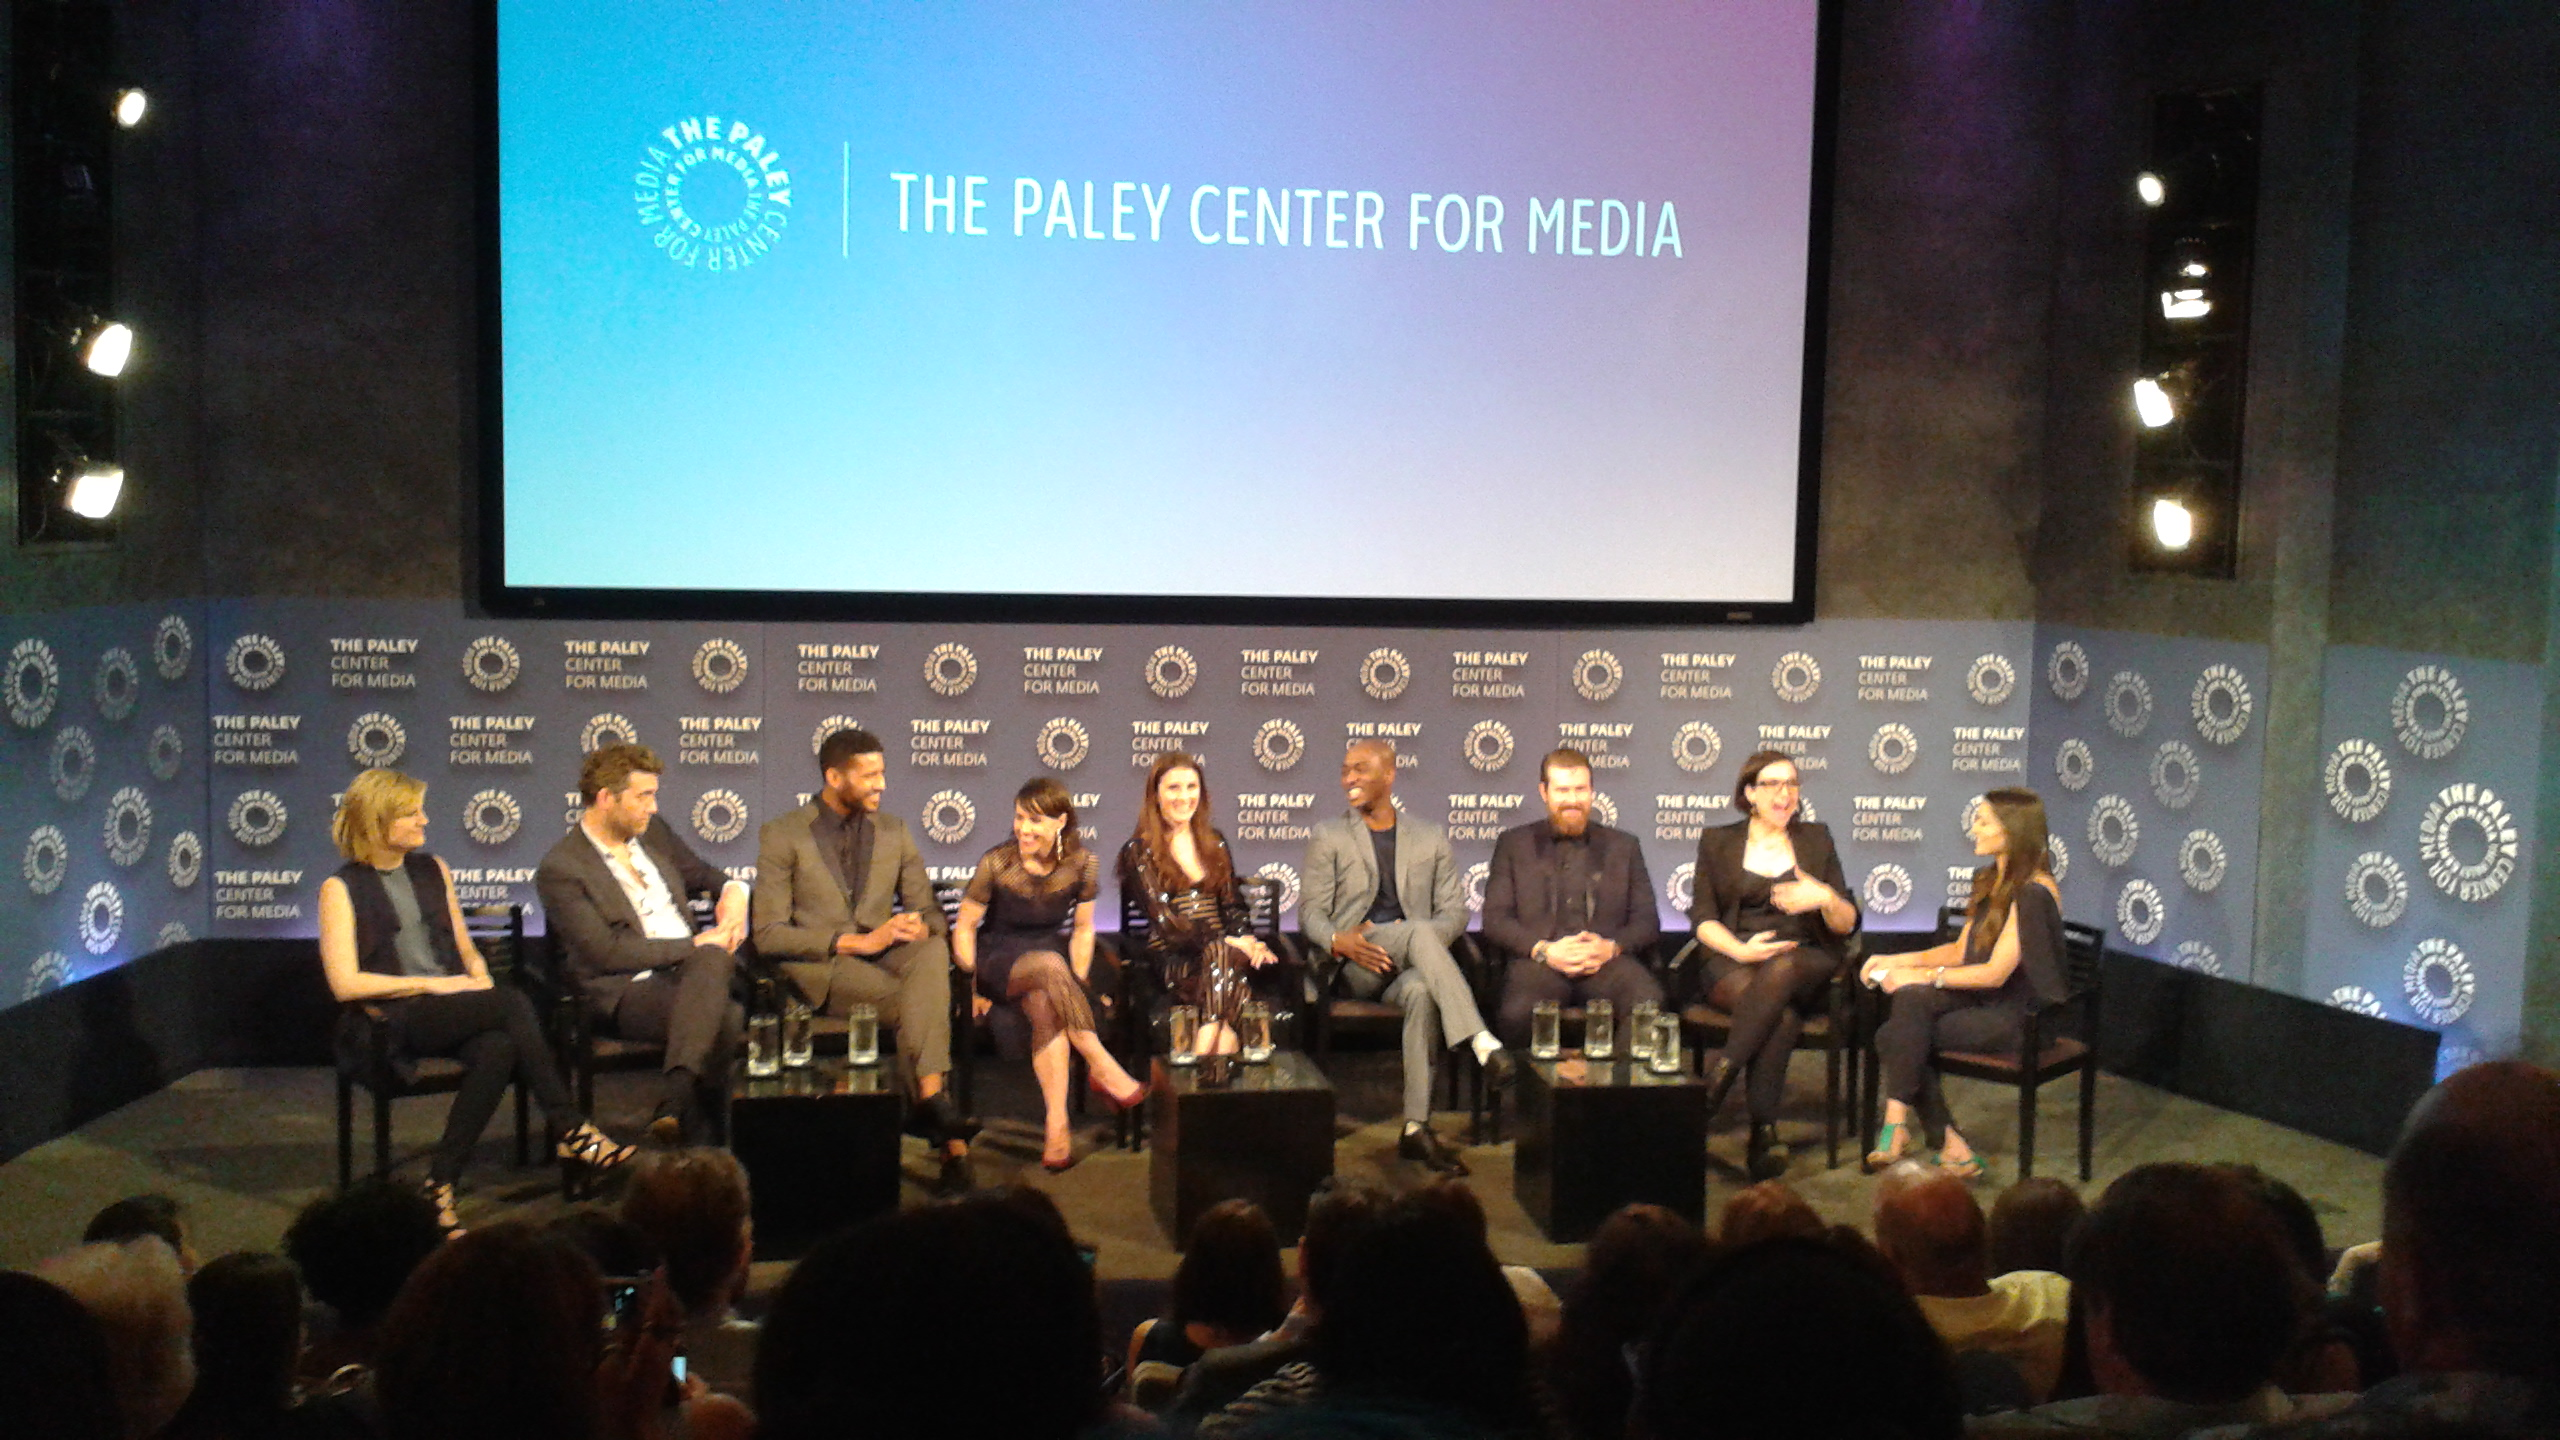 5 Tidbits From The Paley Center's UnREAL Panel